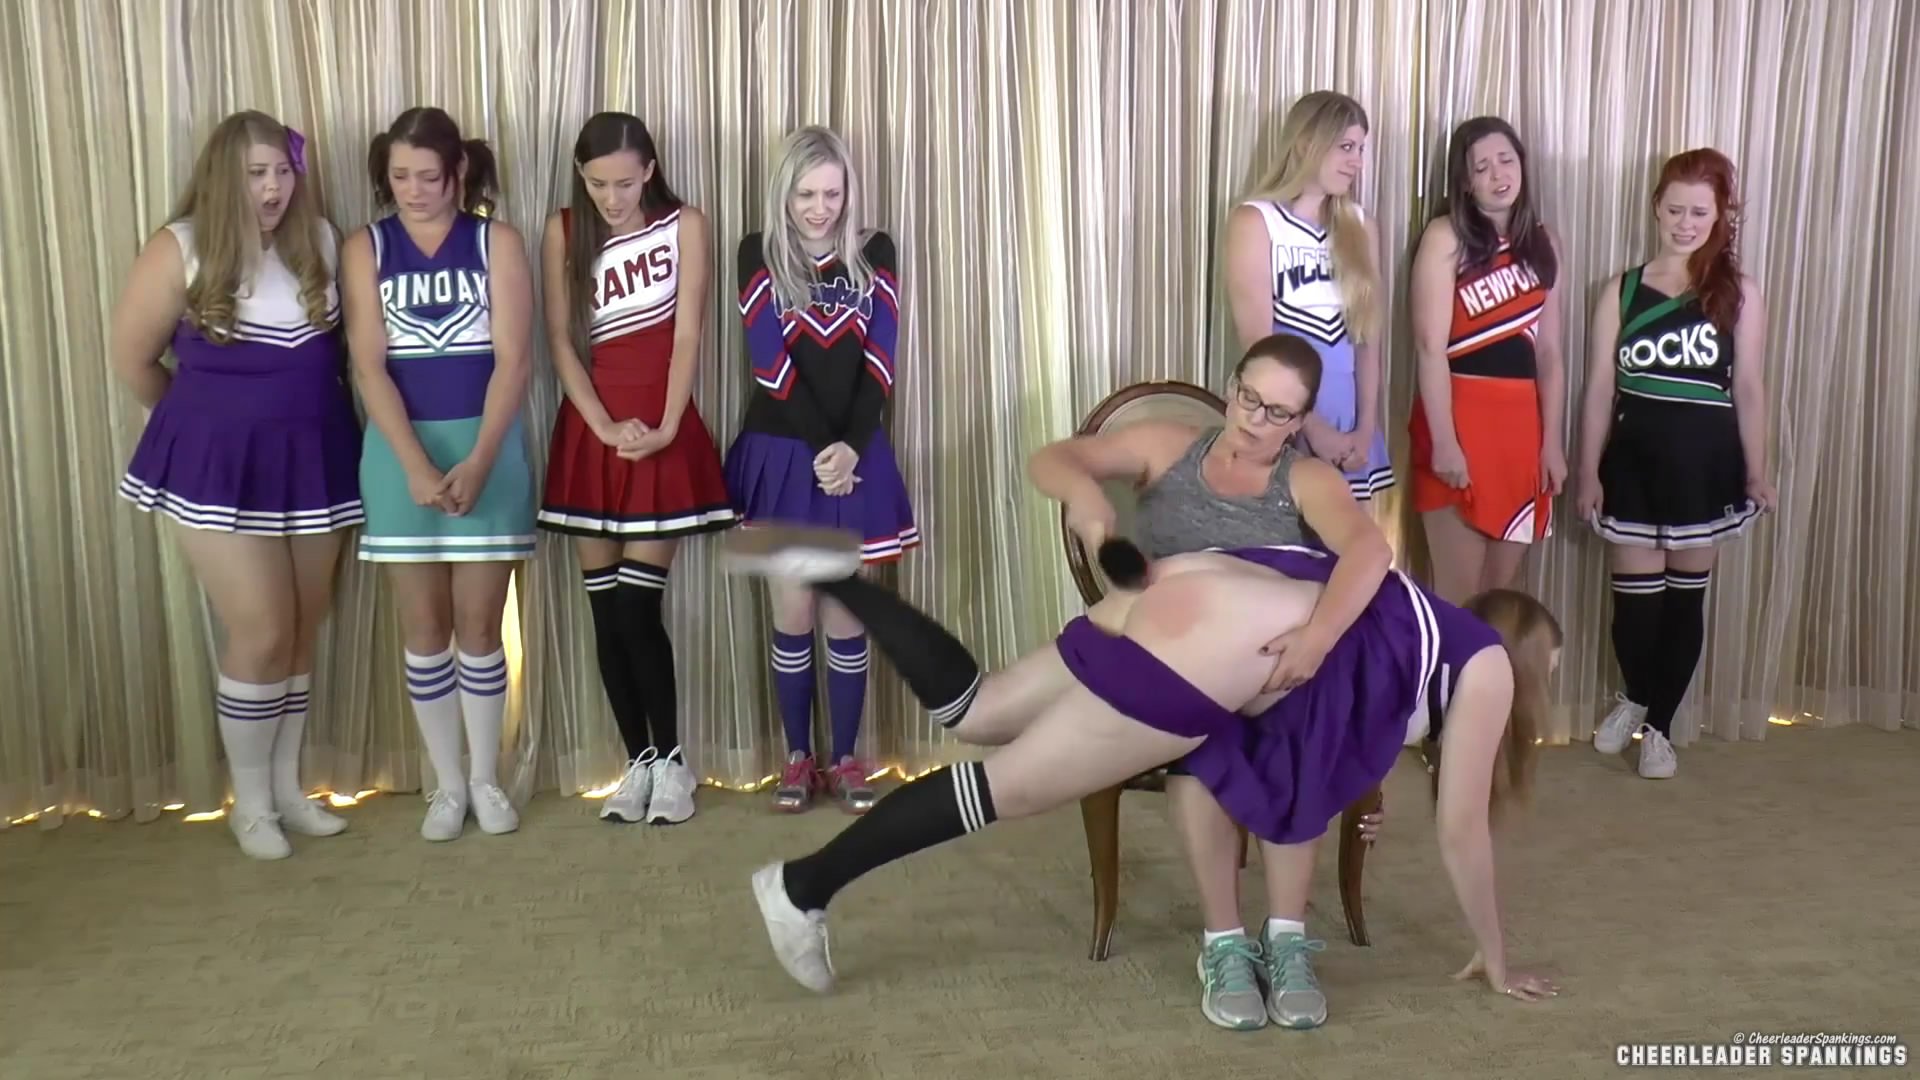 Cheerleader Spankings – MP4/Full HD – Adriana Evans, Alex Reynolds, Cassidy Lau, Christy Cutie, Harly Havik, Michael Masterson, Miss Elizabeth, Stevie Rose, Violet October – Cheer Camp Year Two –clip 01